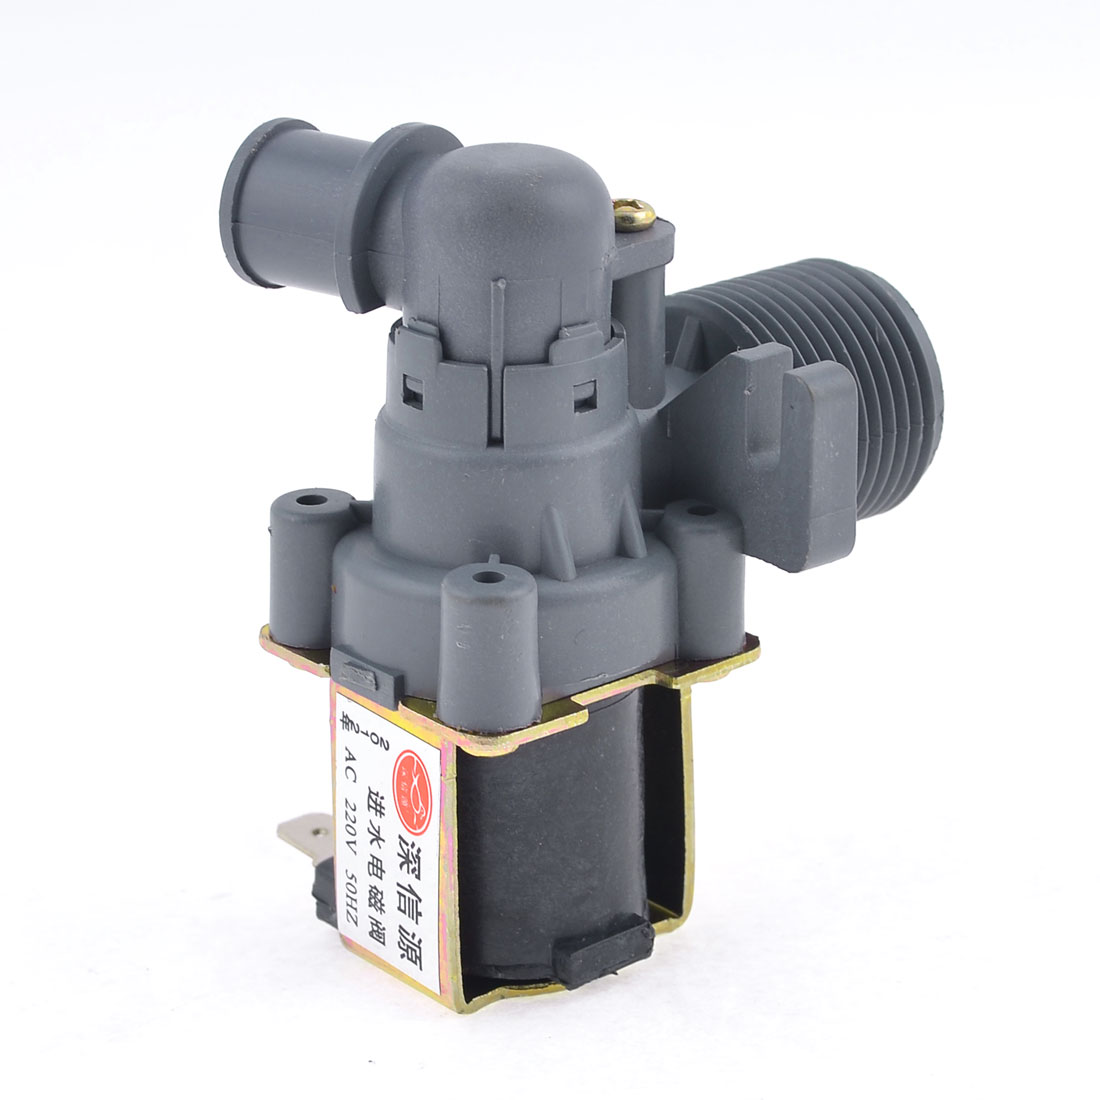 AC 220V 26mm Thread Water Inlet Solenoid Valve for Little Swan Washing Machine